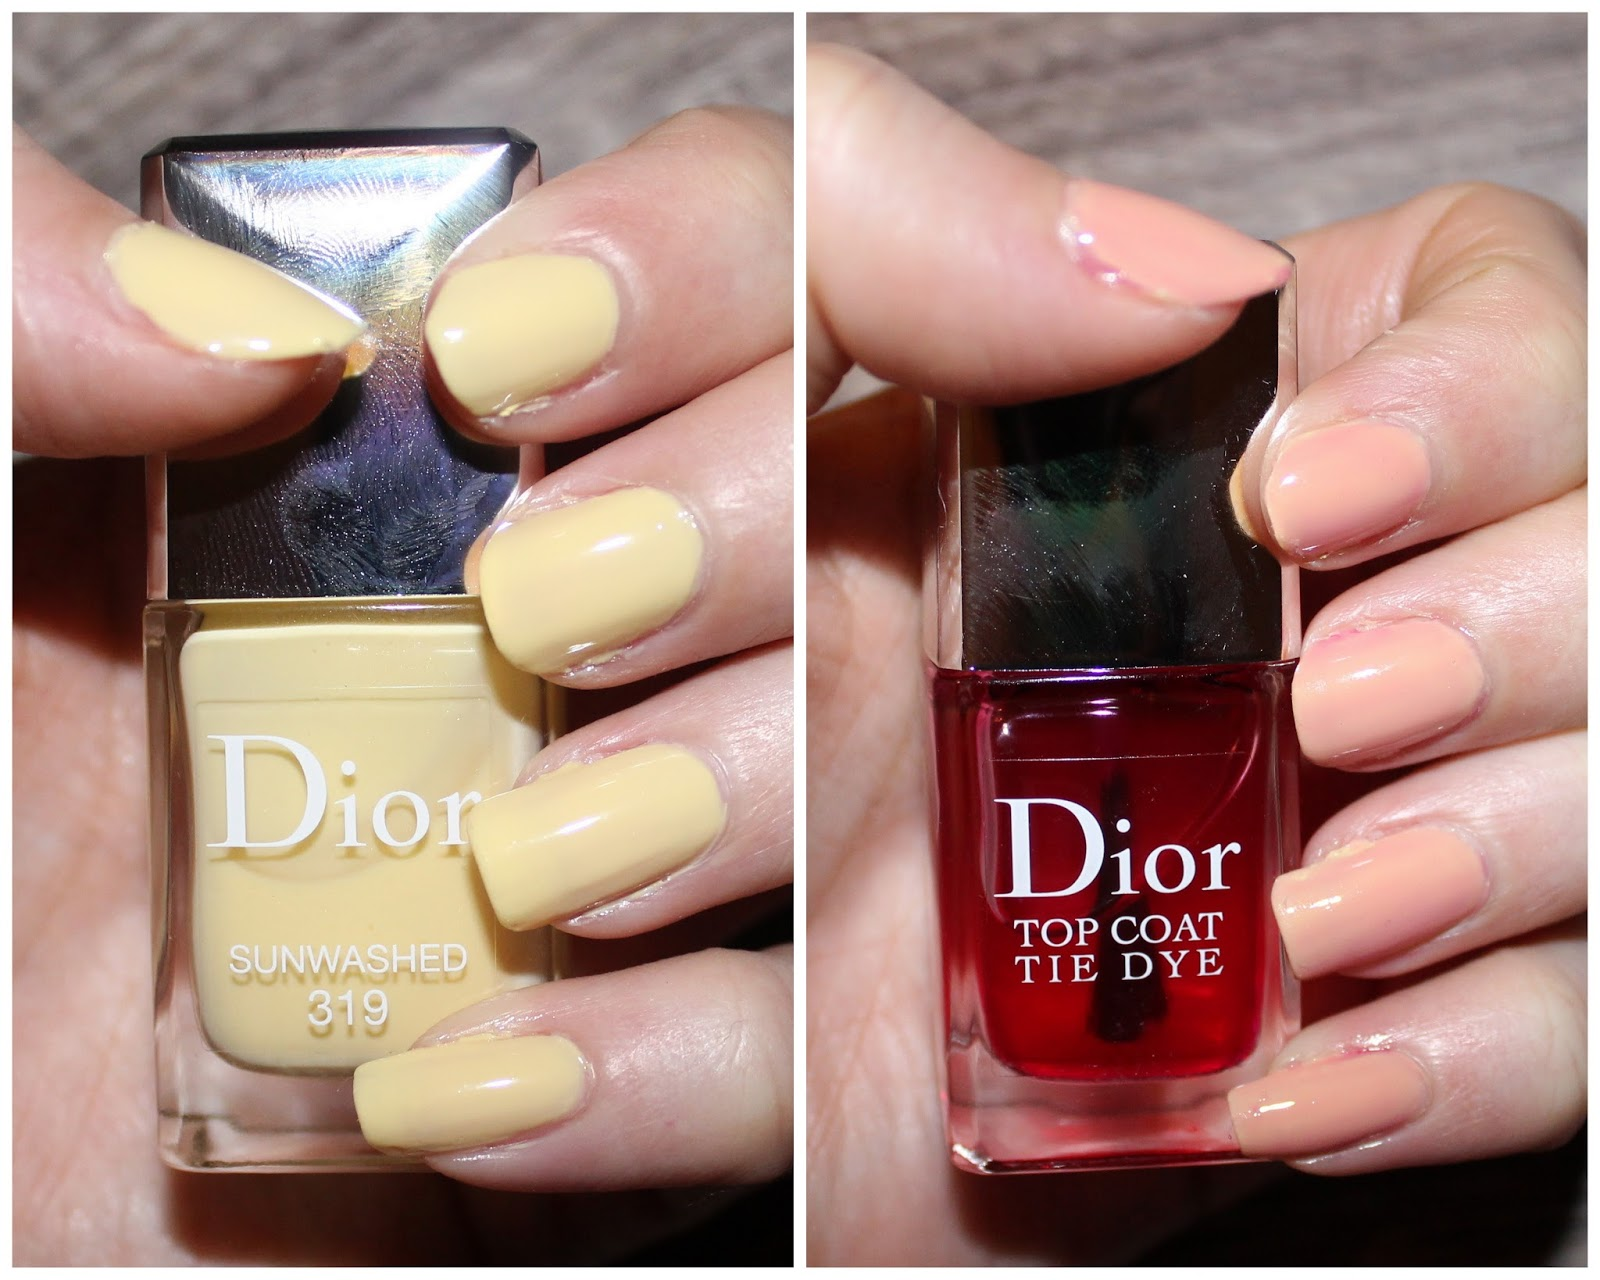 Dior Vernis Sunwashed & Tie Dye Top Coat